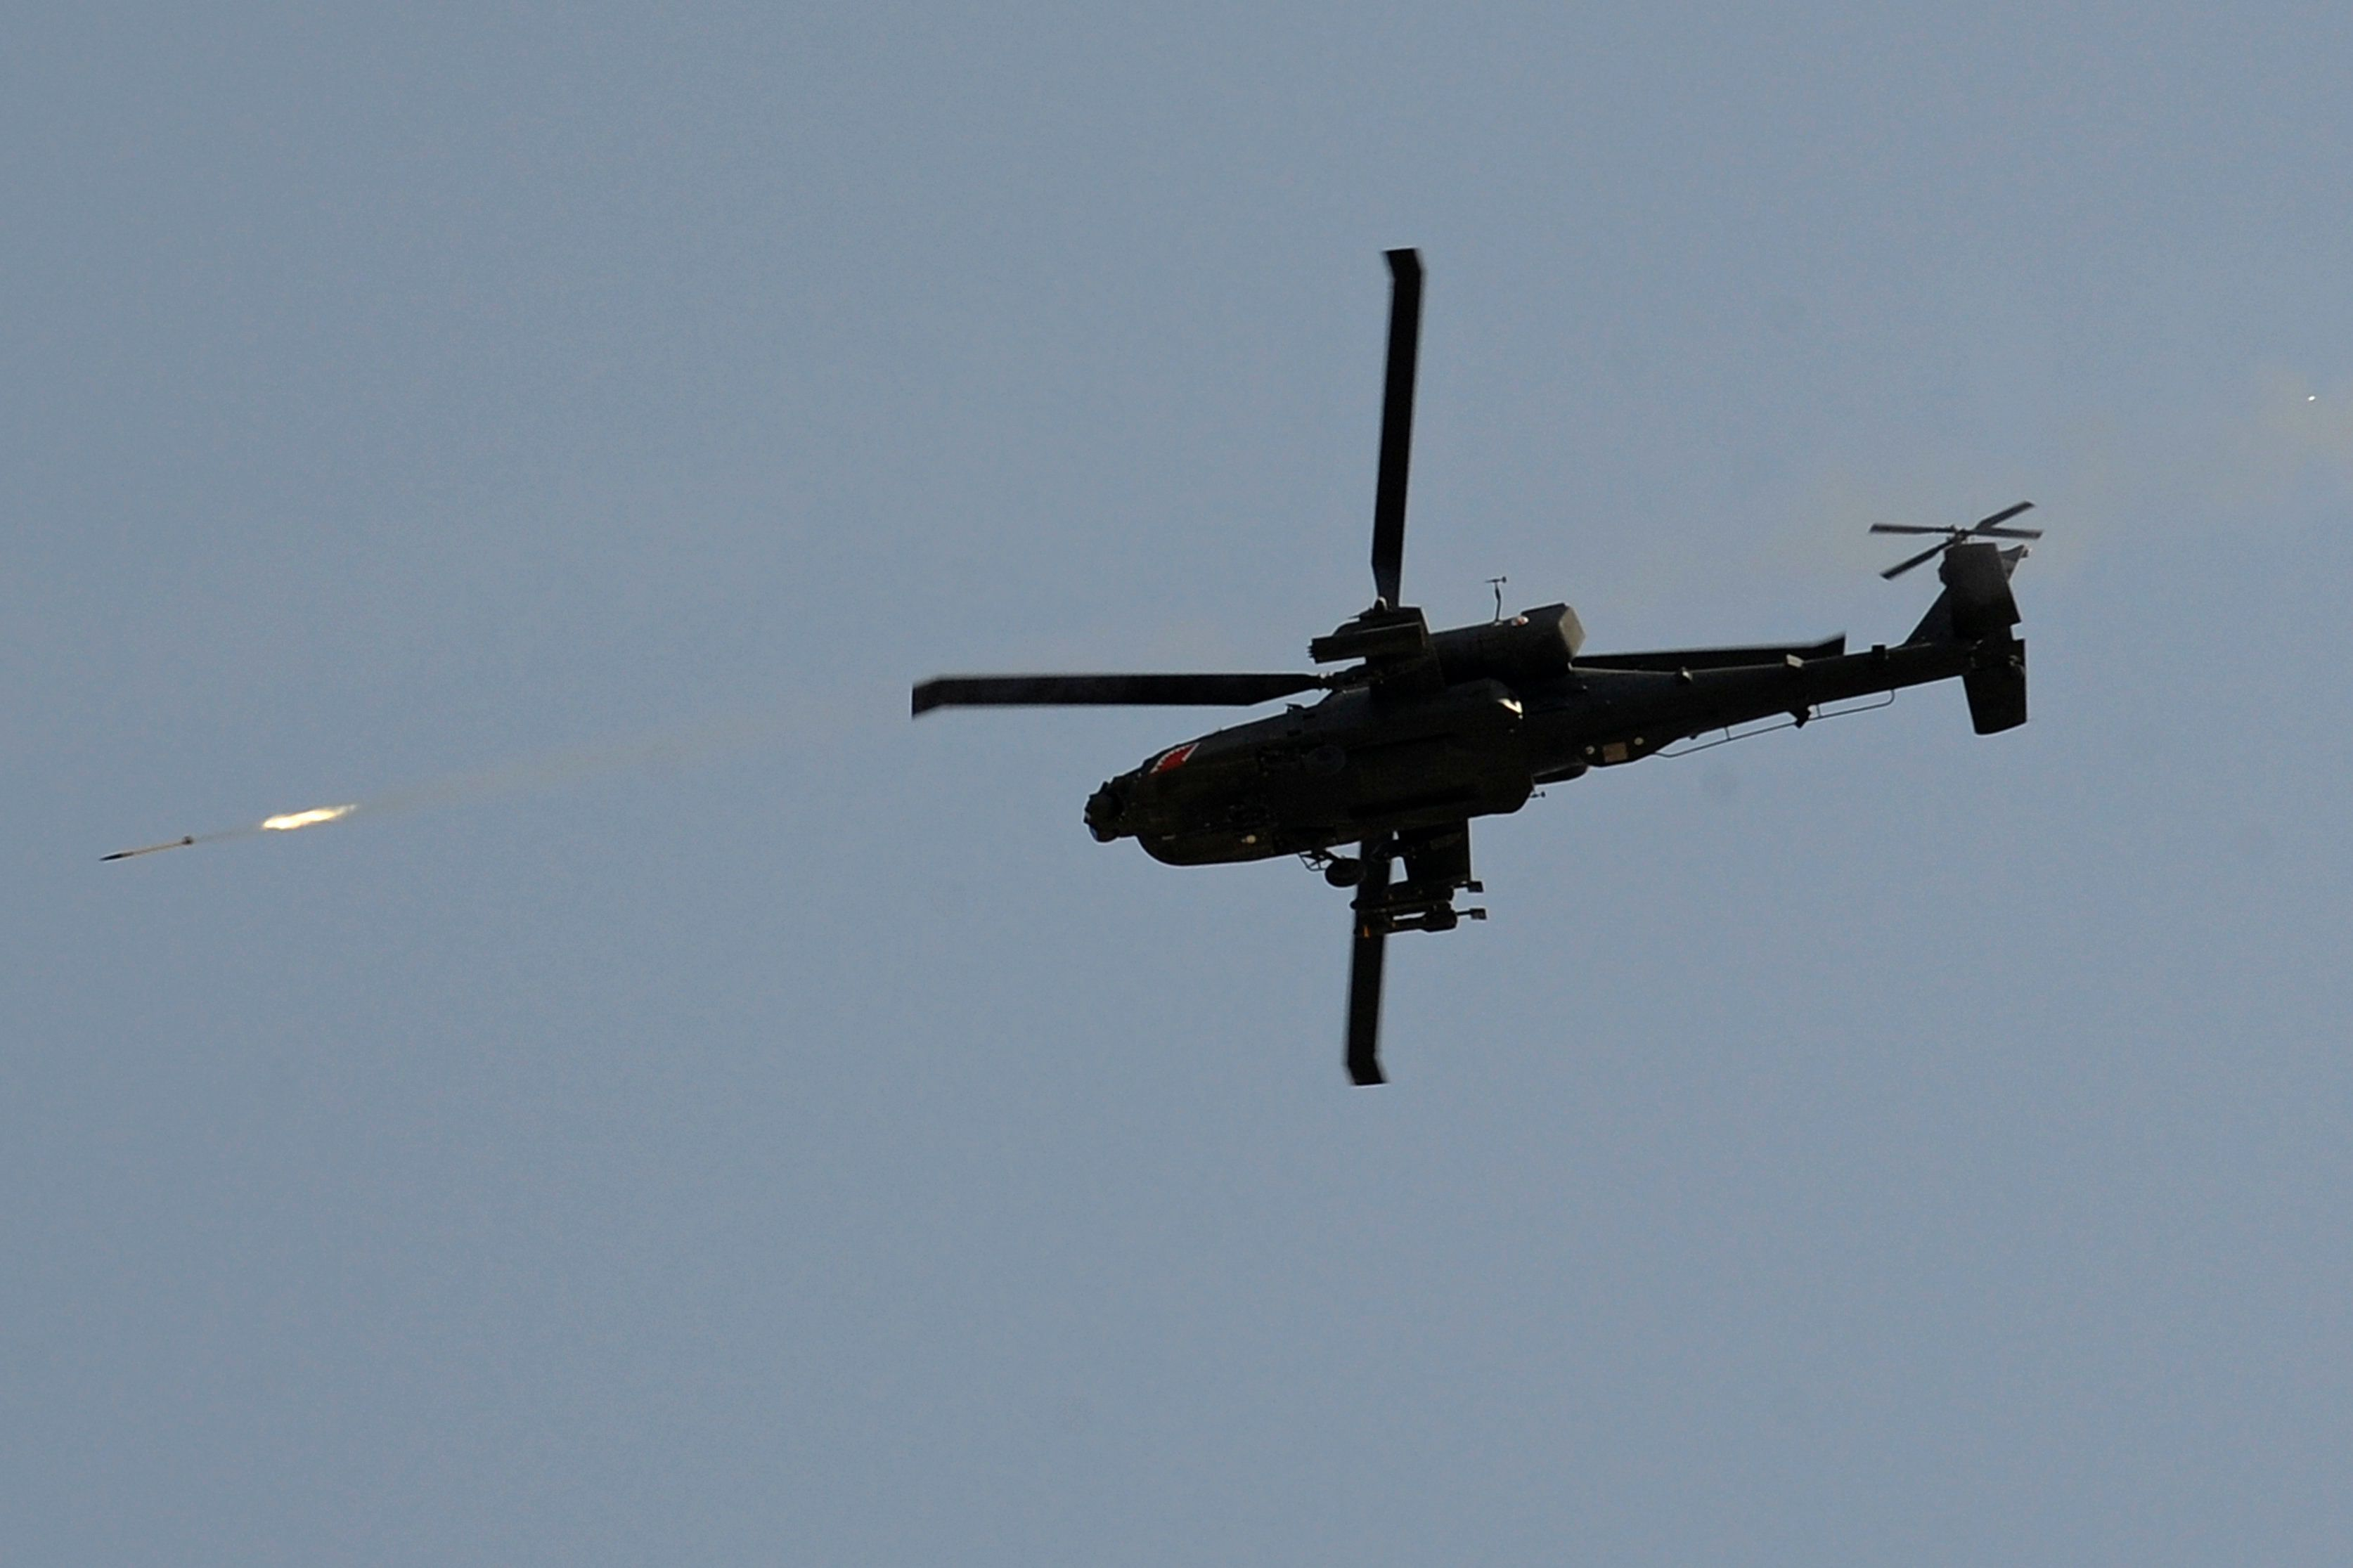 A US Army AH-64 Apache attack helicopter fires a rocket while providing security cover around the area where US soldiers from 703rd EOD Company, 2nd Platoon, Team 6, prepared a controlled detonation of munitions outside Camp Clark in Mandozai district, Khost province, eastern Afghanistan on July 4, 2011. Top US lawmakers on July 3 slammed President Barack Obama's military drawdown plans for Afghanistan as 'risky', unsupported by his military commanders and a threat to progress made in the last year. AFP PHOTO/TED ALJIBE (Photo credit should read TED ALJIBE/AFP/Getty Images)